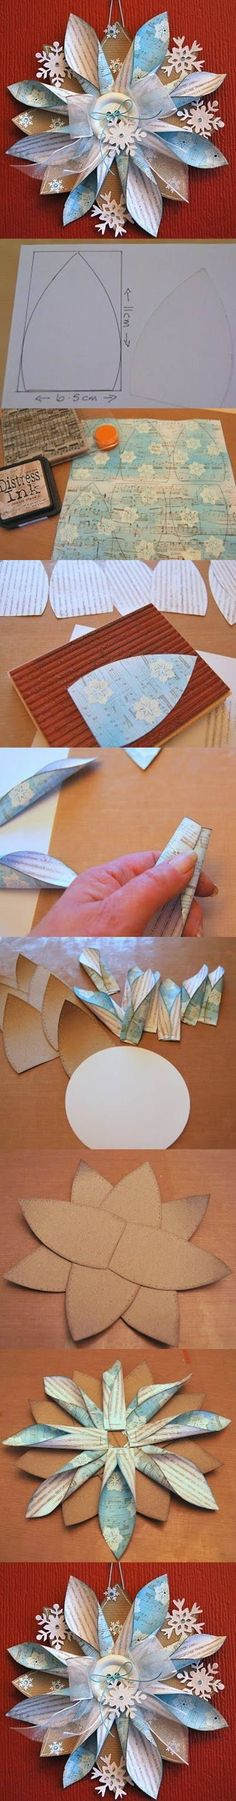 photo tutorial ... DIY Paper Flower Ornaments DIY Paper Flower Ornaments ...